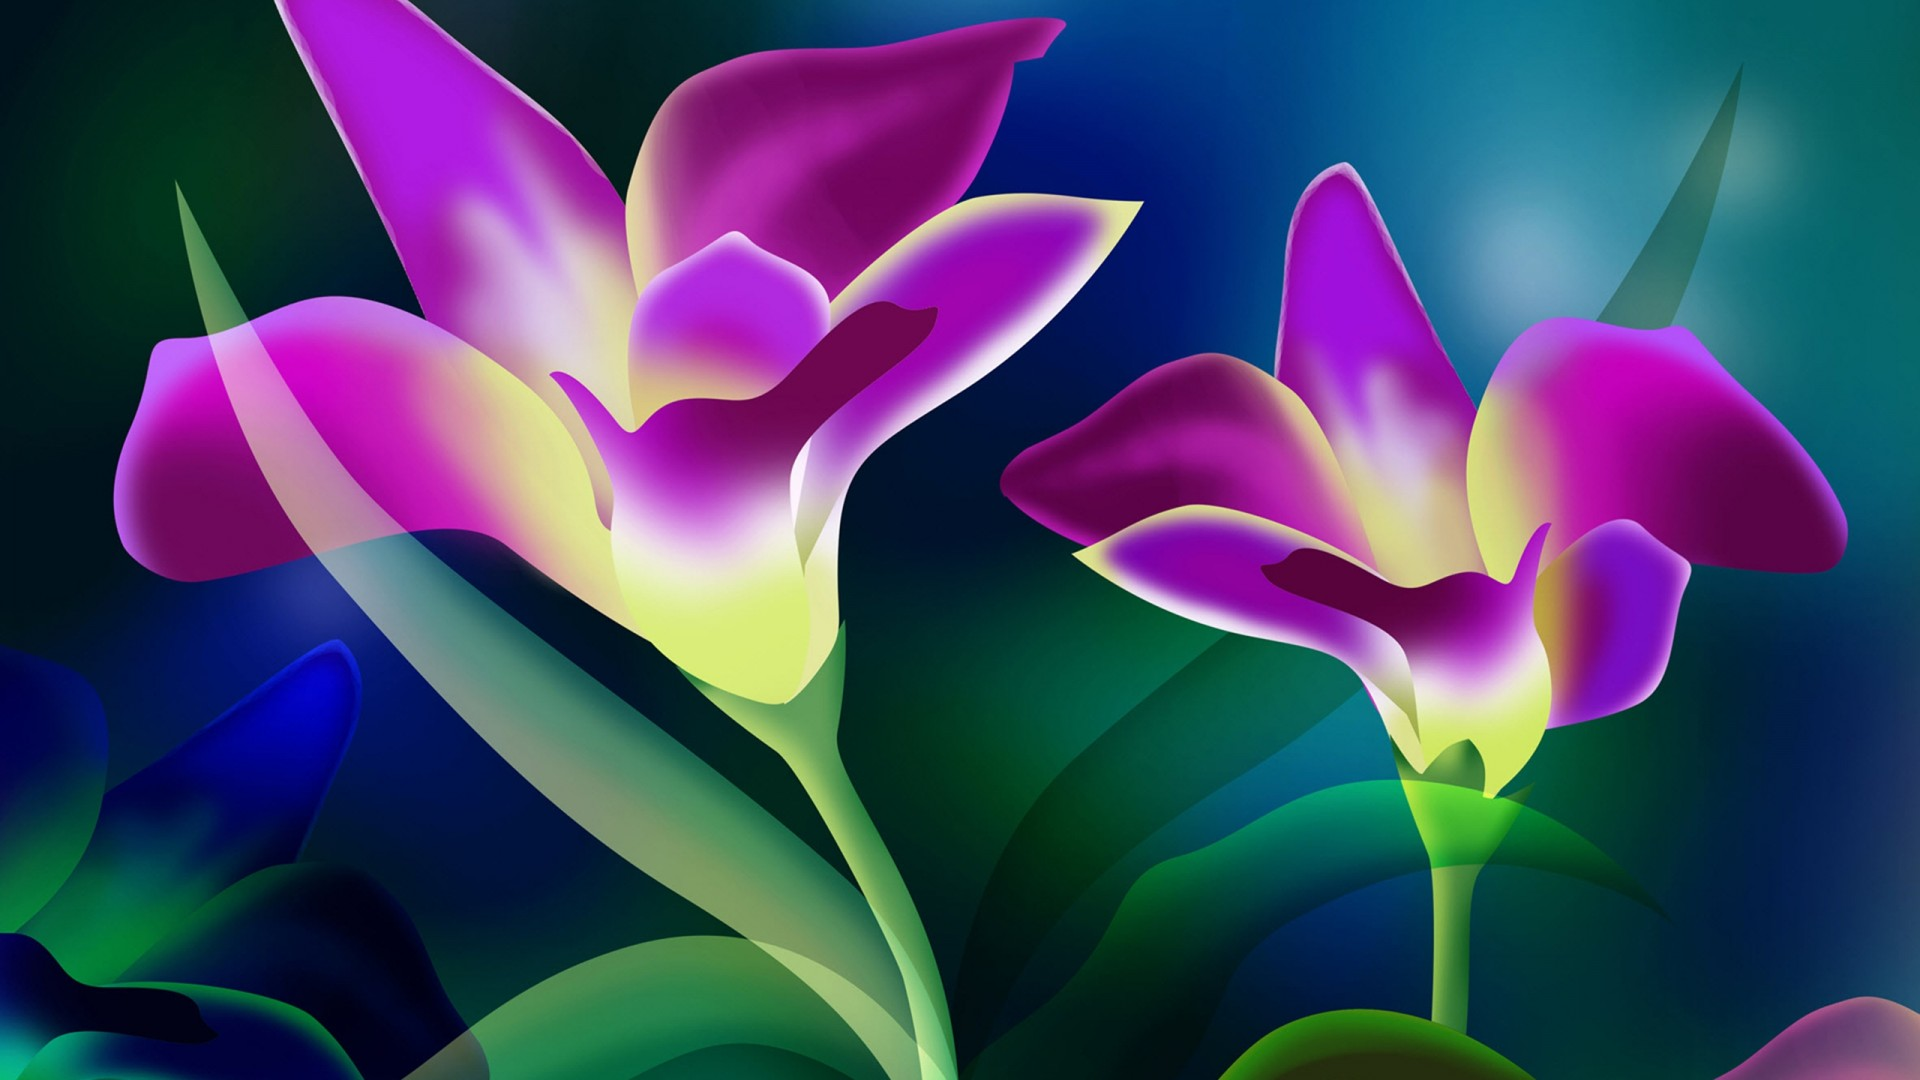 Beautiful Flower Wallpaper Hd Free Download 1704 : Wallpapers13 com